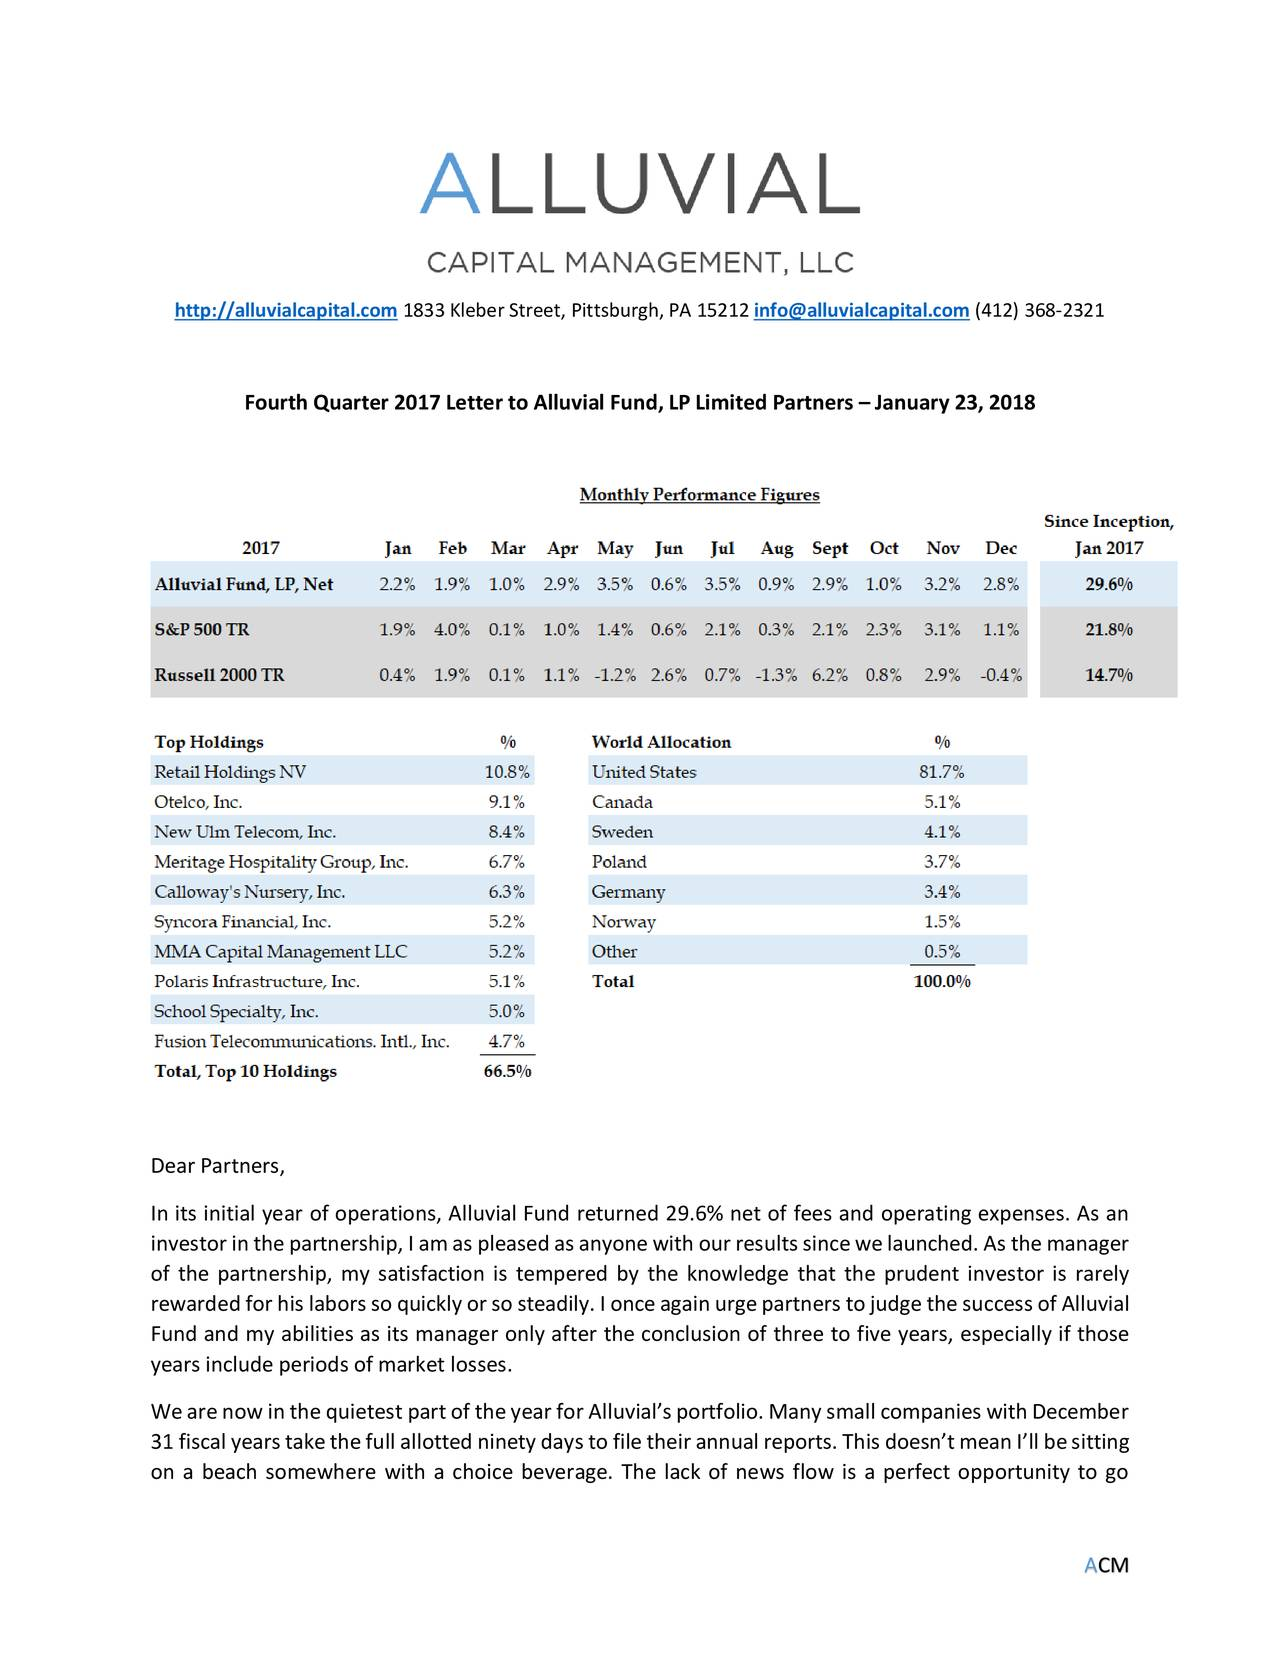 Fourth Quarter 2017 Letter to Alluvial Fund,LP Limited Partners – January 23, 2018 Dear Partners, In its initial year of operations, Alluvial Fund returned 29.6% net of fees and operating expenses. As an investor in the partnership, I am as pleased as anyonewith our results since we launched. As the manager of the partnership, my satisfaction is tempered by the knowledge that the prudent investor is rarely rewarded for his labors so quickly or so steadily. I once again urge partners to judge the success of Alluvial Fund and my abilities as its manager only after the conclusion of three to five years, especially if those years include periods of market losses. We are now in the quietest part of the year for Alluvial's portfolio. Many small companies with December 31 fiscal years take the full allotted ninety days to file their annual reports. This doesn't mean I'll besitting on a beach somewhere with a choice beverage. The lack of news flow is a perfect opportunity to go ACM